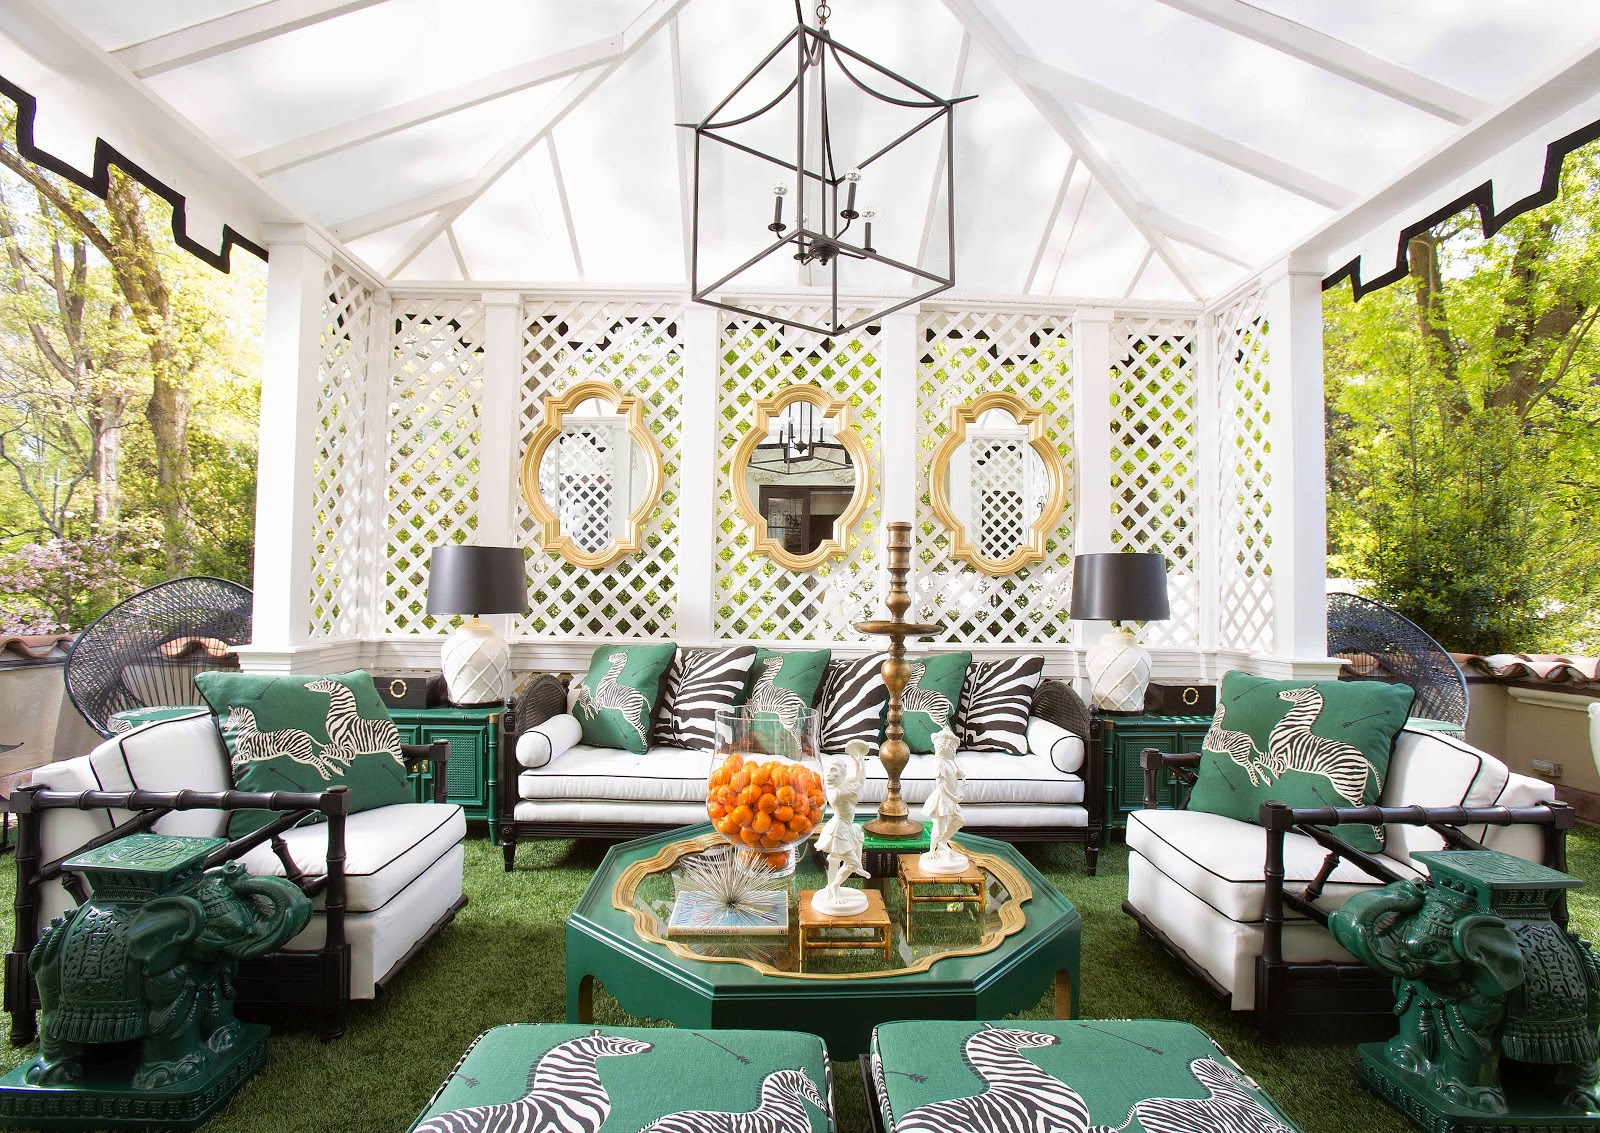 Interior design by Parker Kennedy Living - High Point Market 2017 Style Spotters - Living room designs - chinoiserie interiors high point market 2017 High Point Market 2017: What are the Style Spotters Most Excited for? 4dc5338b7e55e739420907519237602d